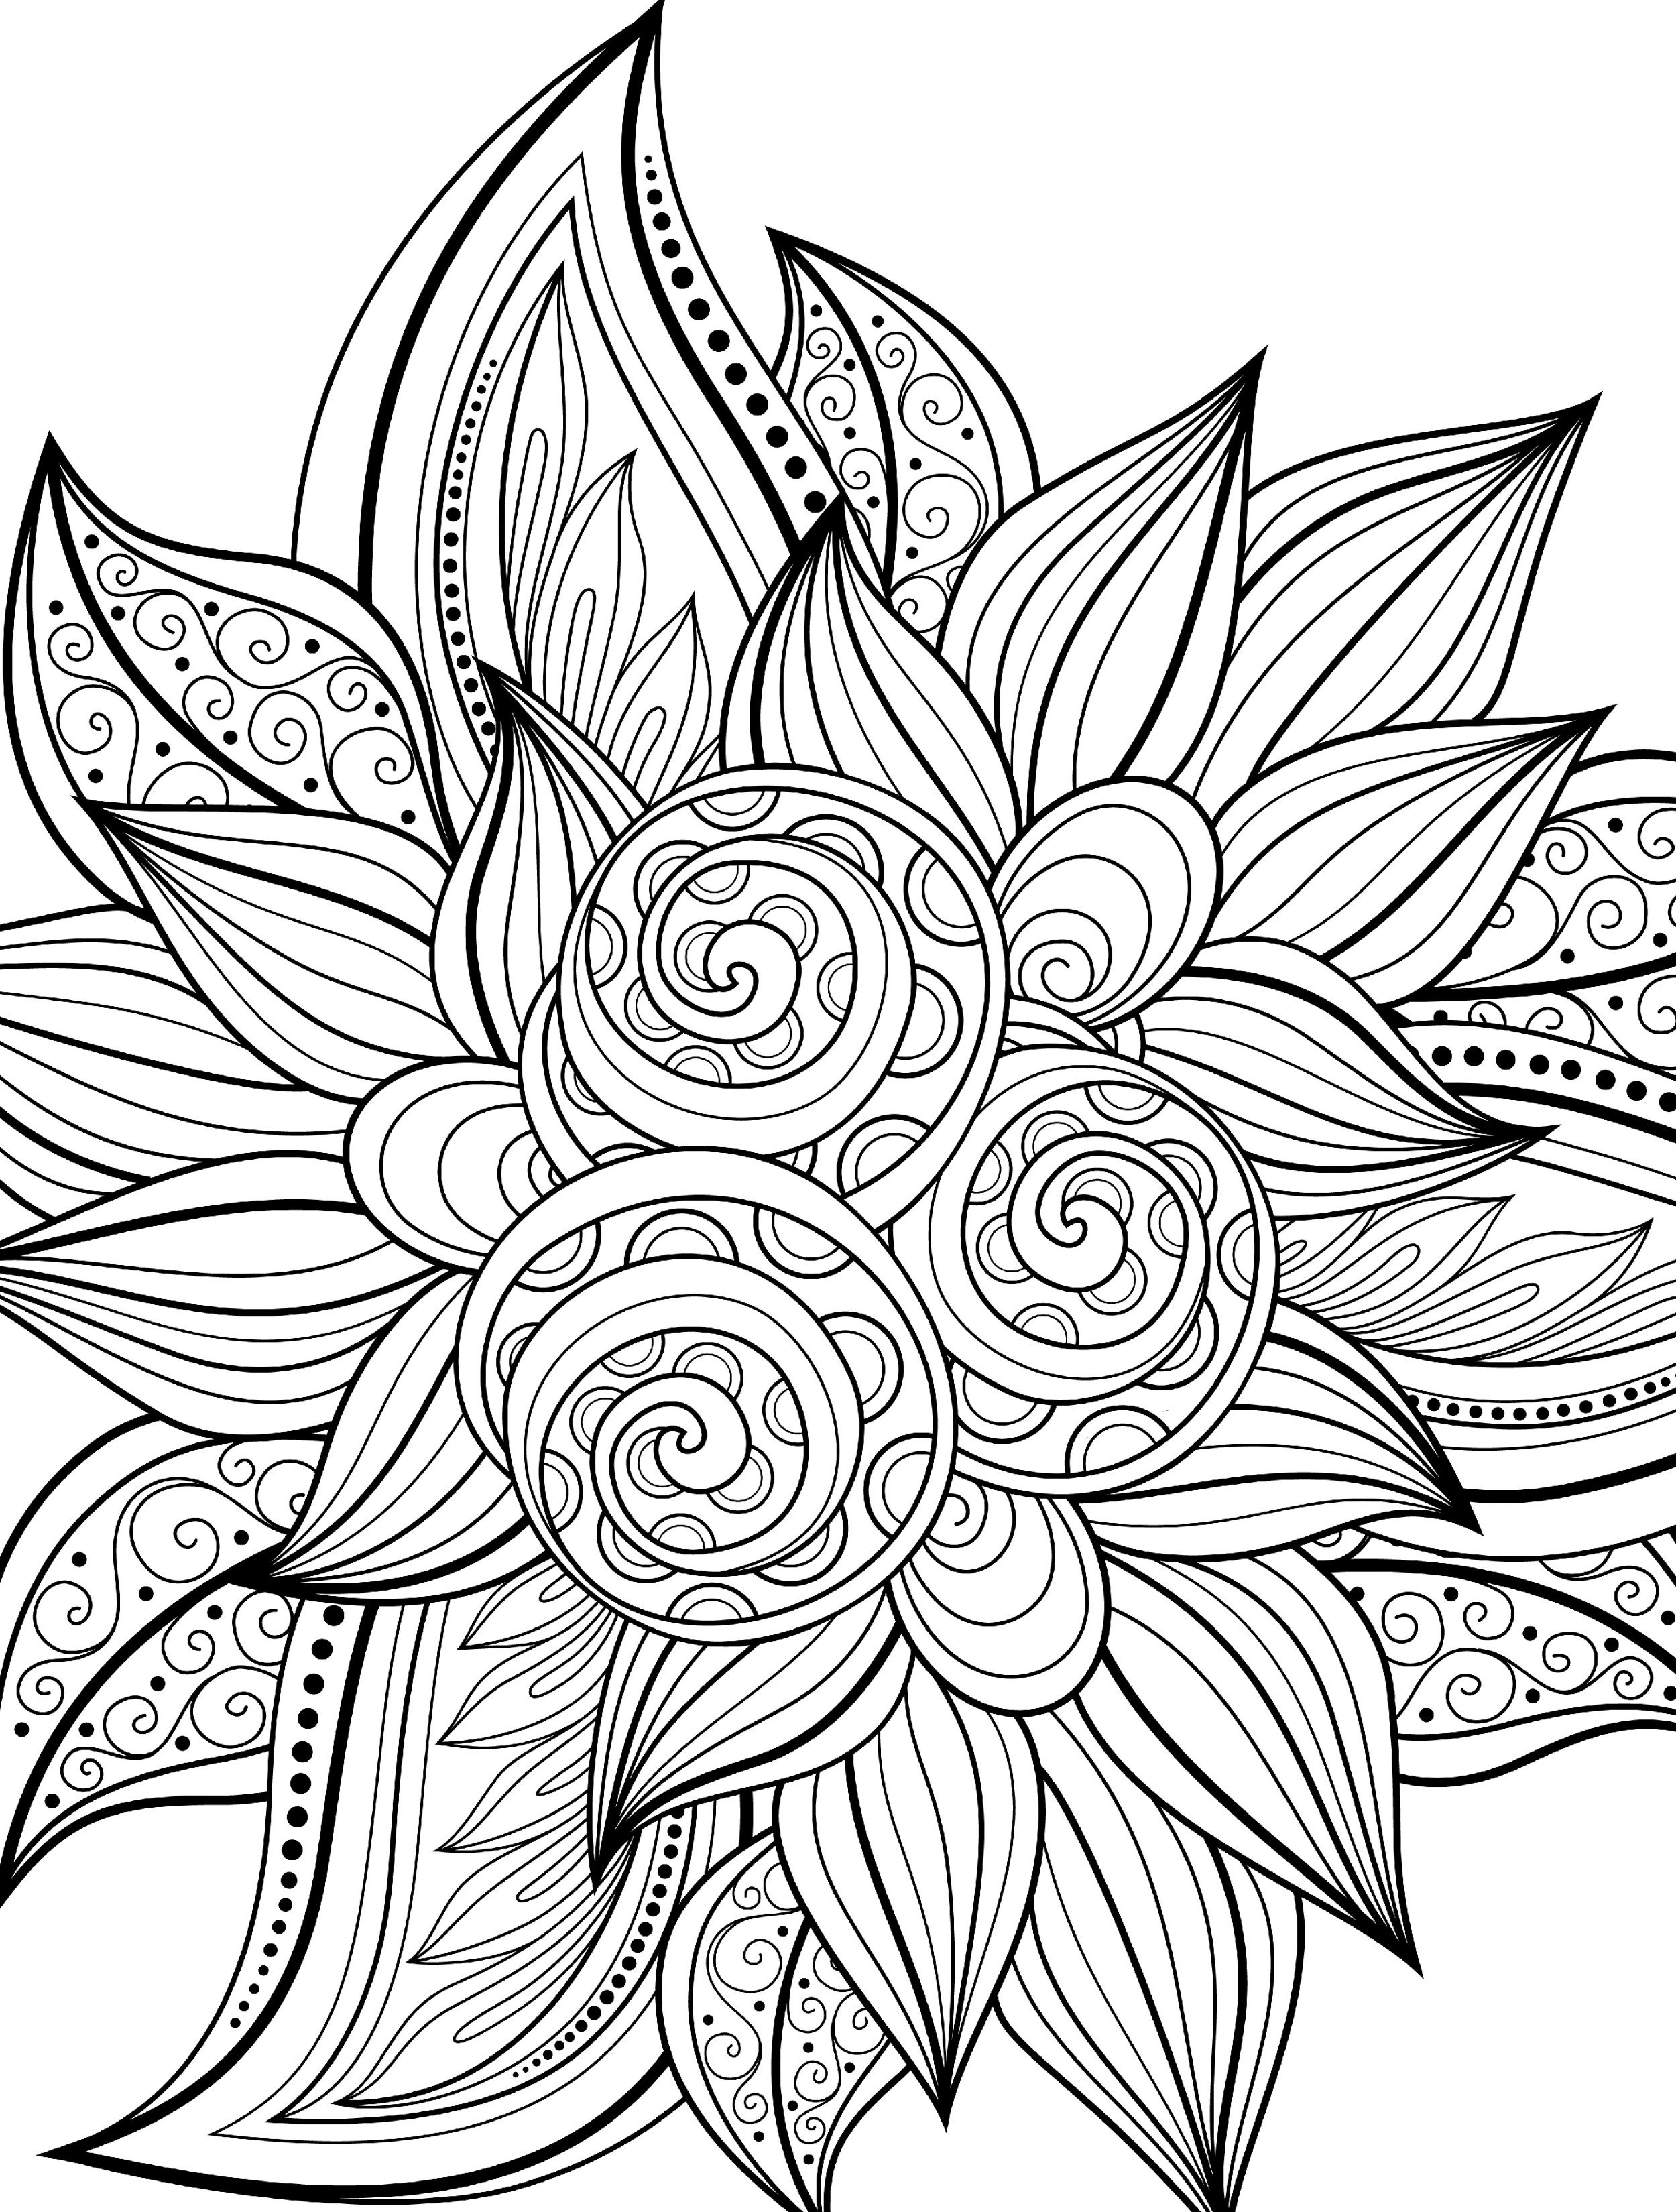 Print Off Coloring Pages Girls